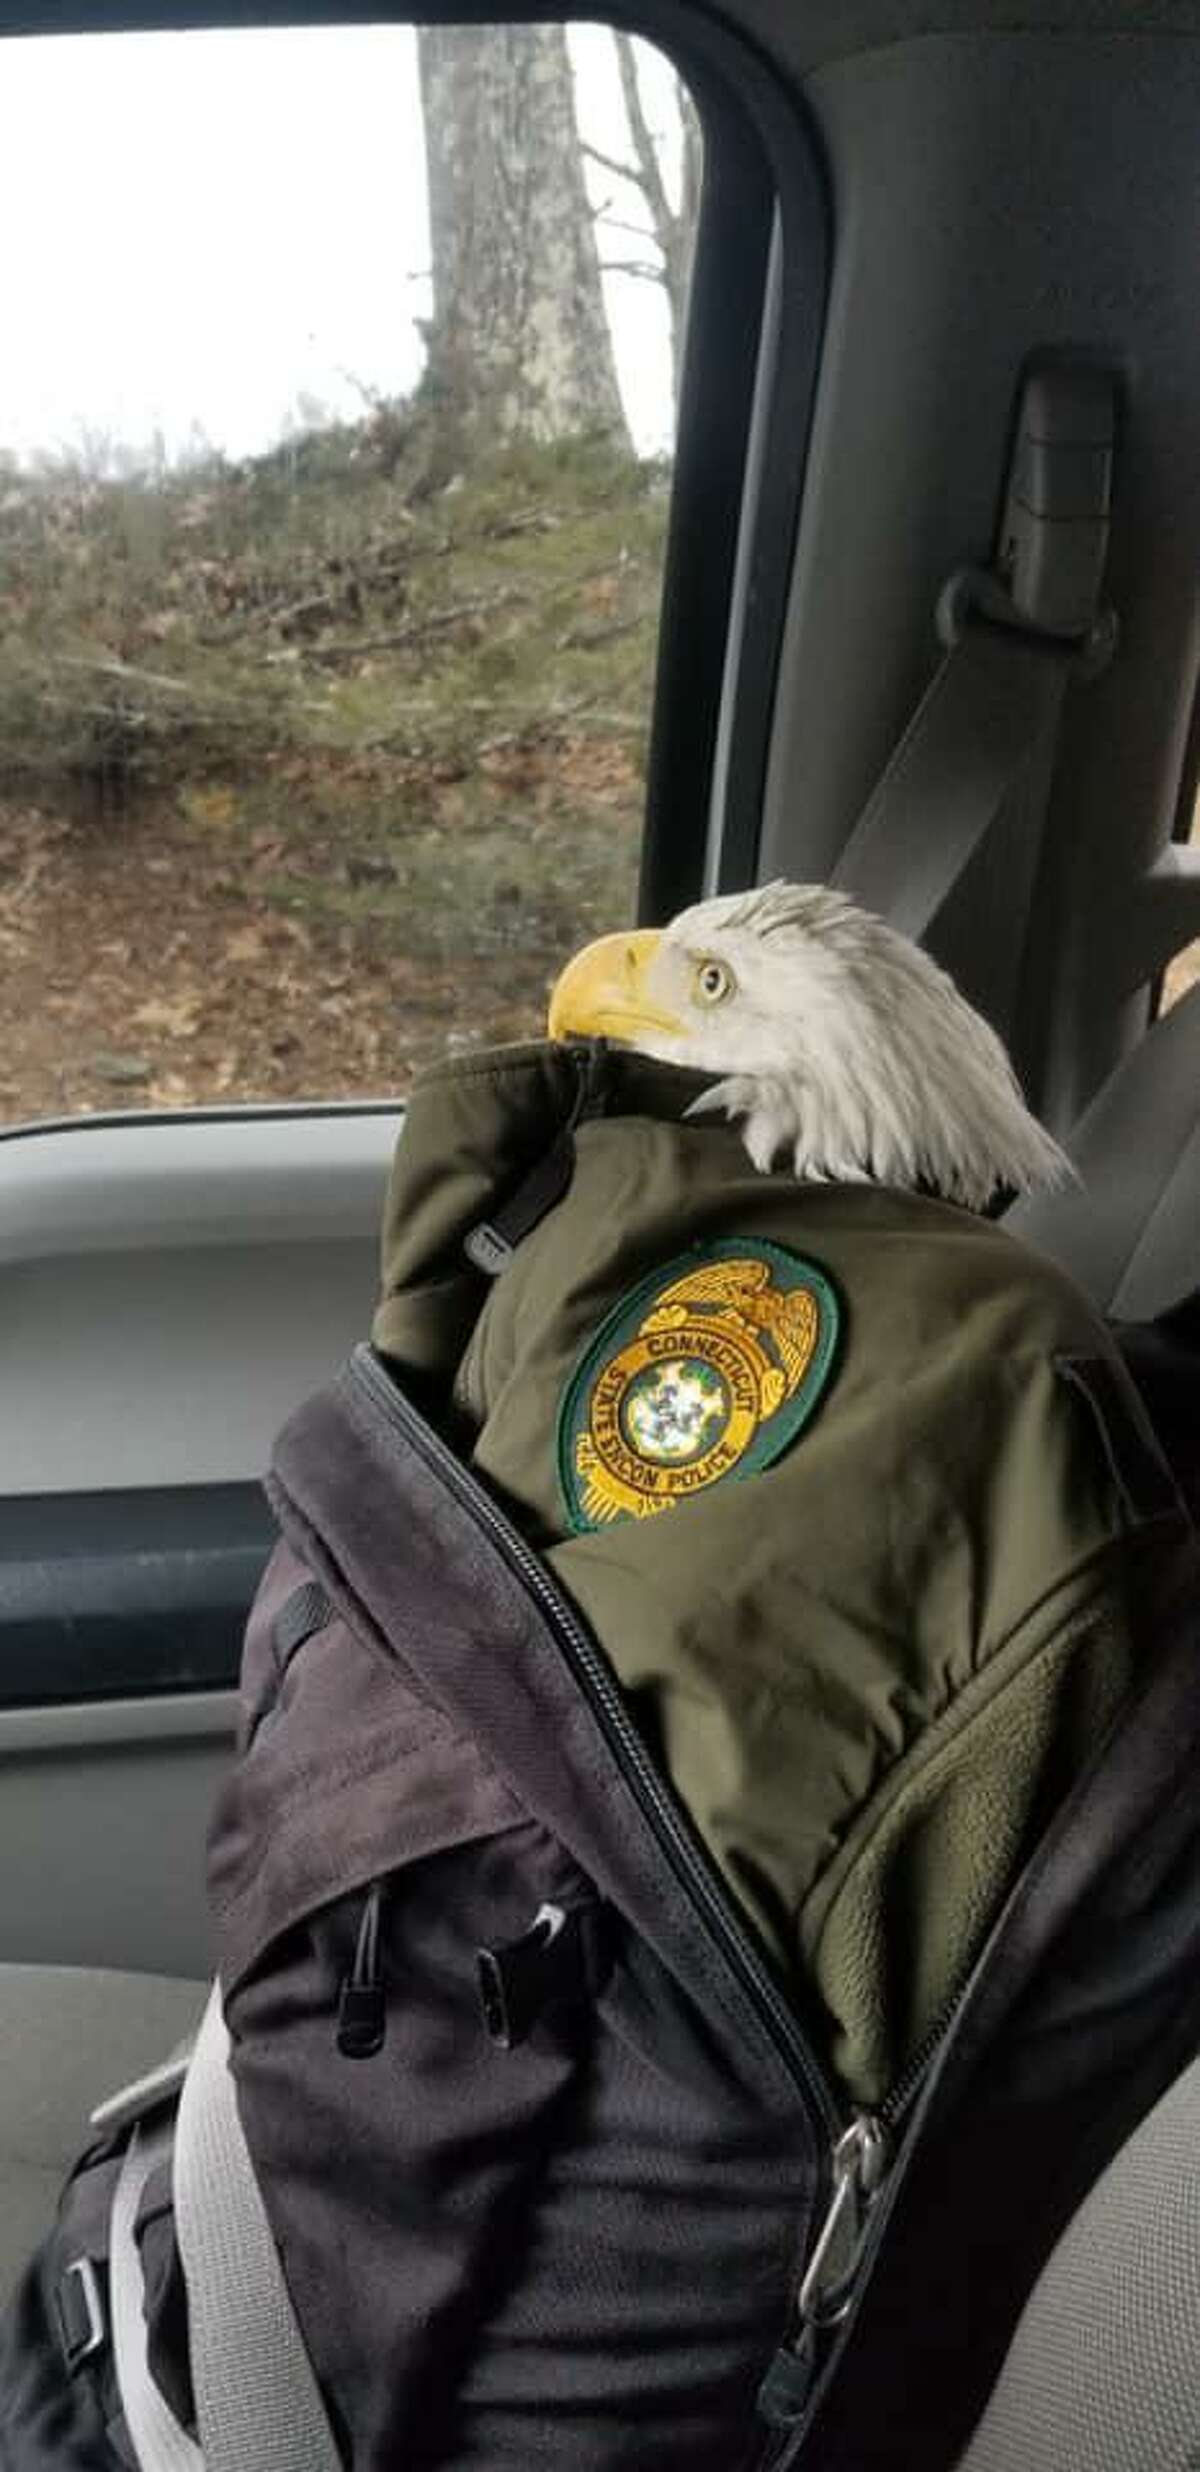 The injured eagle was transported by the Connecticut State Environmental Conservation Police for treatment on Wednesday.